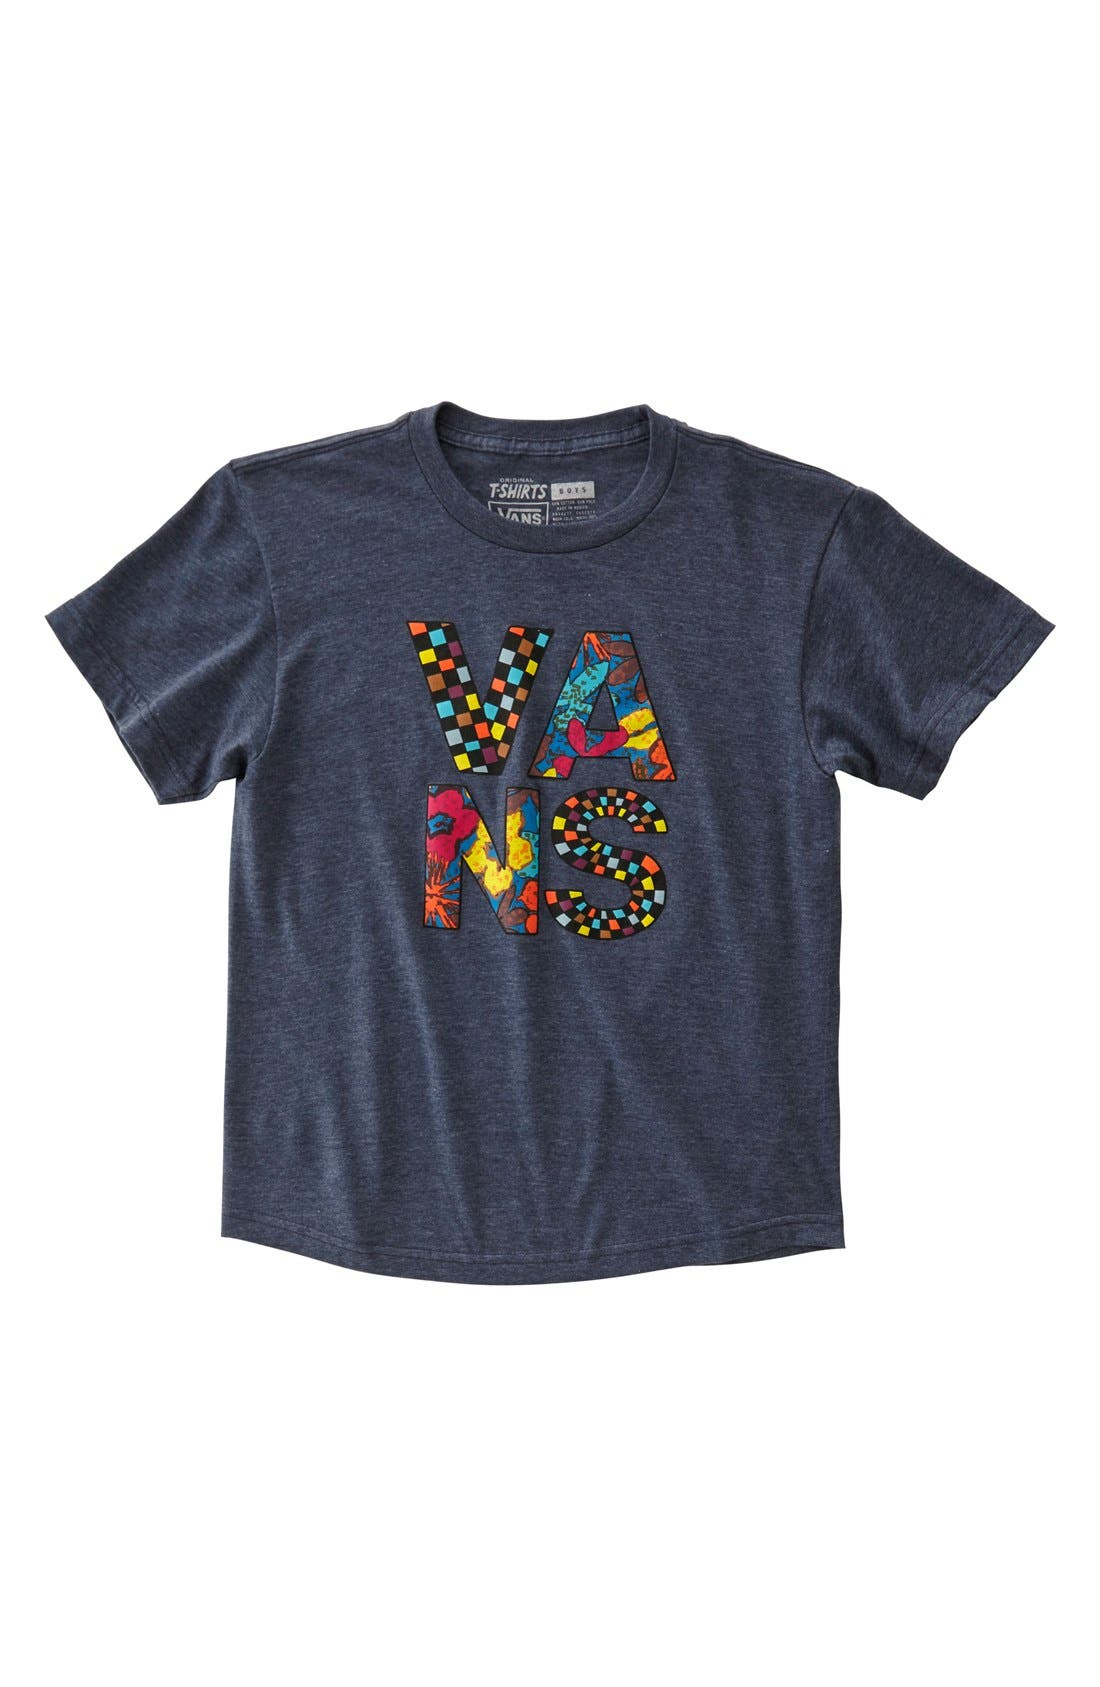 Alternate Image 1 Selected - Vans 'Typesetter' Graphic T-Shirt (Big Boys)